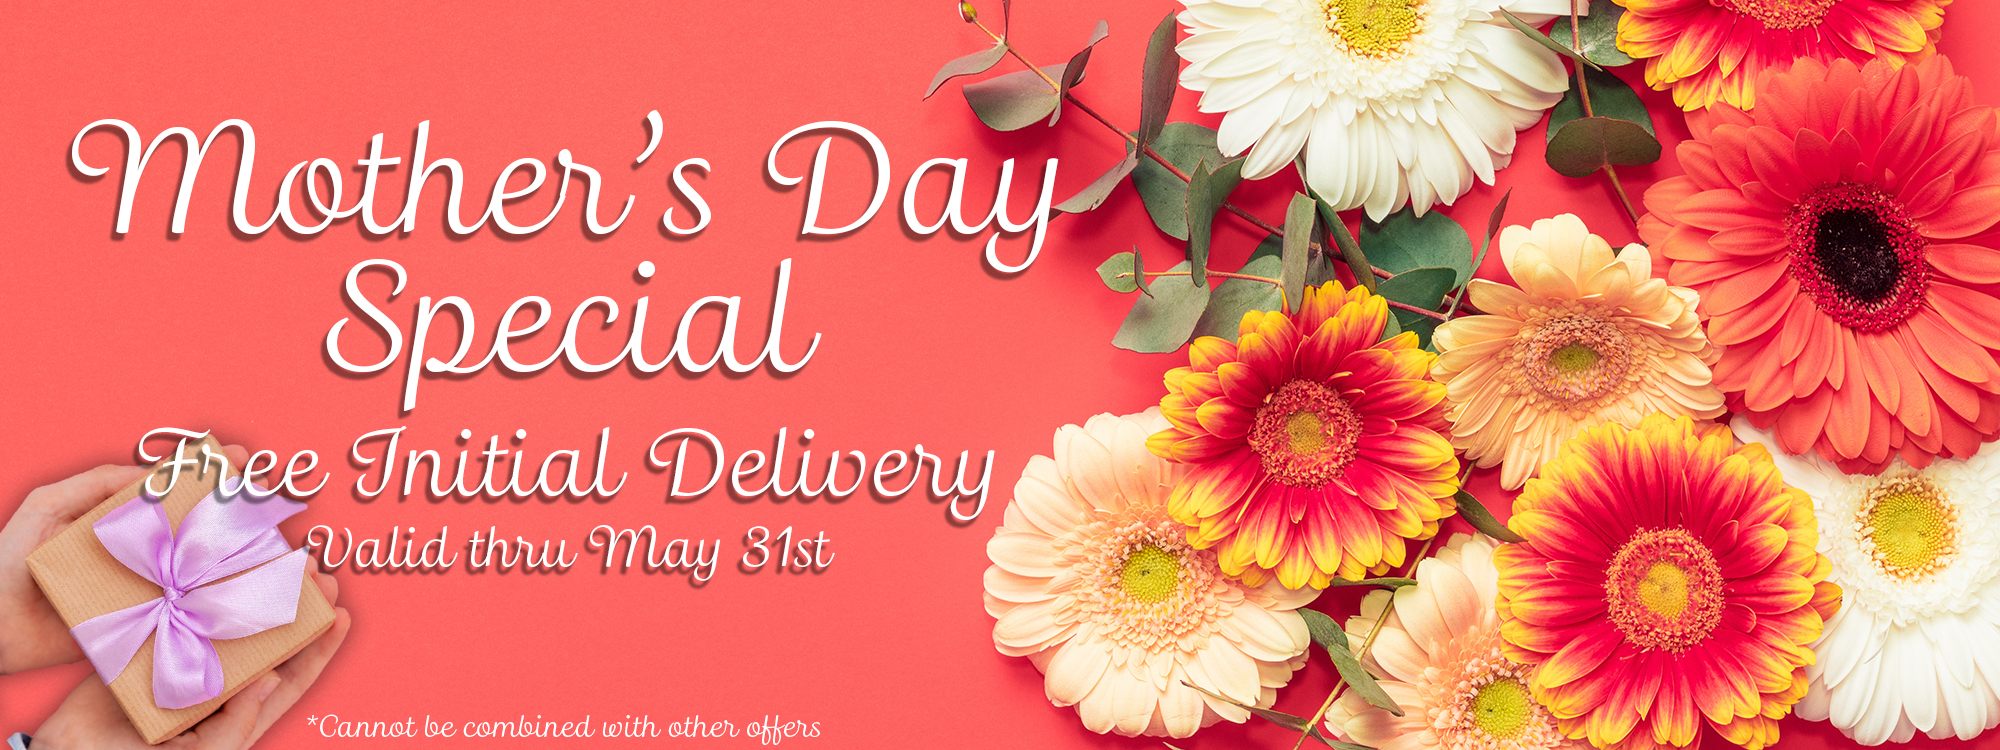 Mother's Day Special - Free Initial Delivery - Valid Thru May 31st *Cannot be combined with other offers